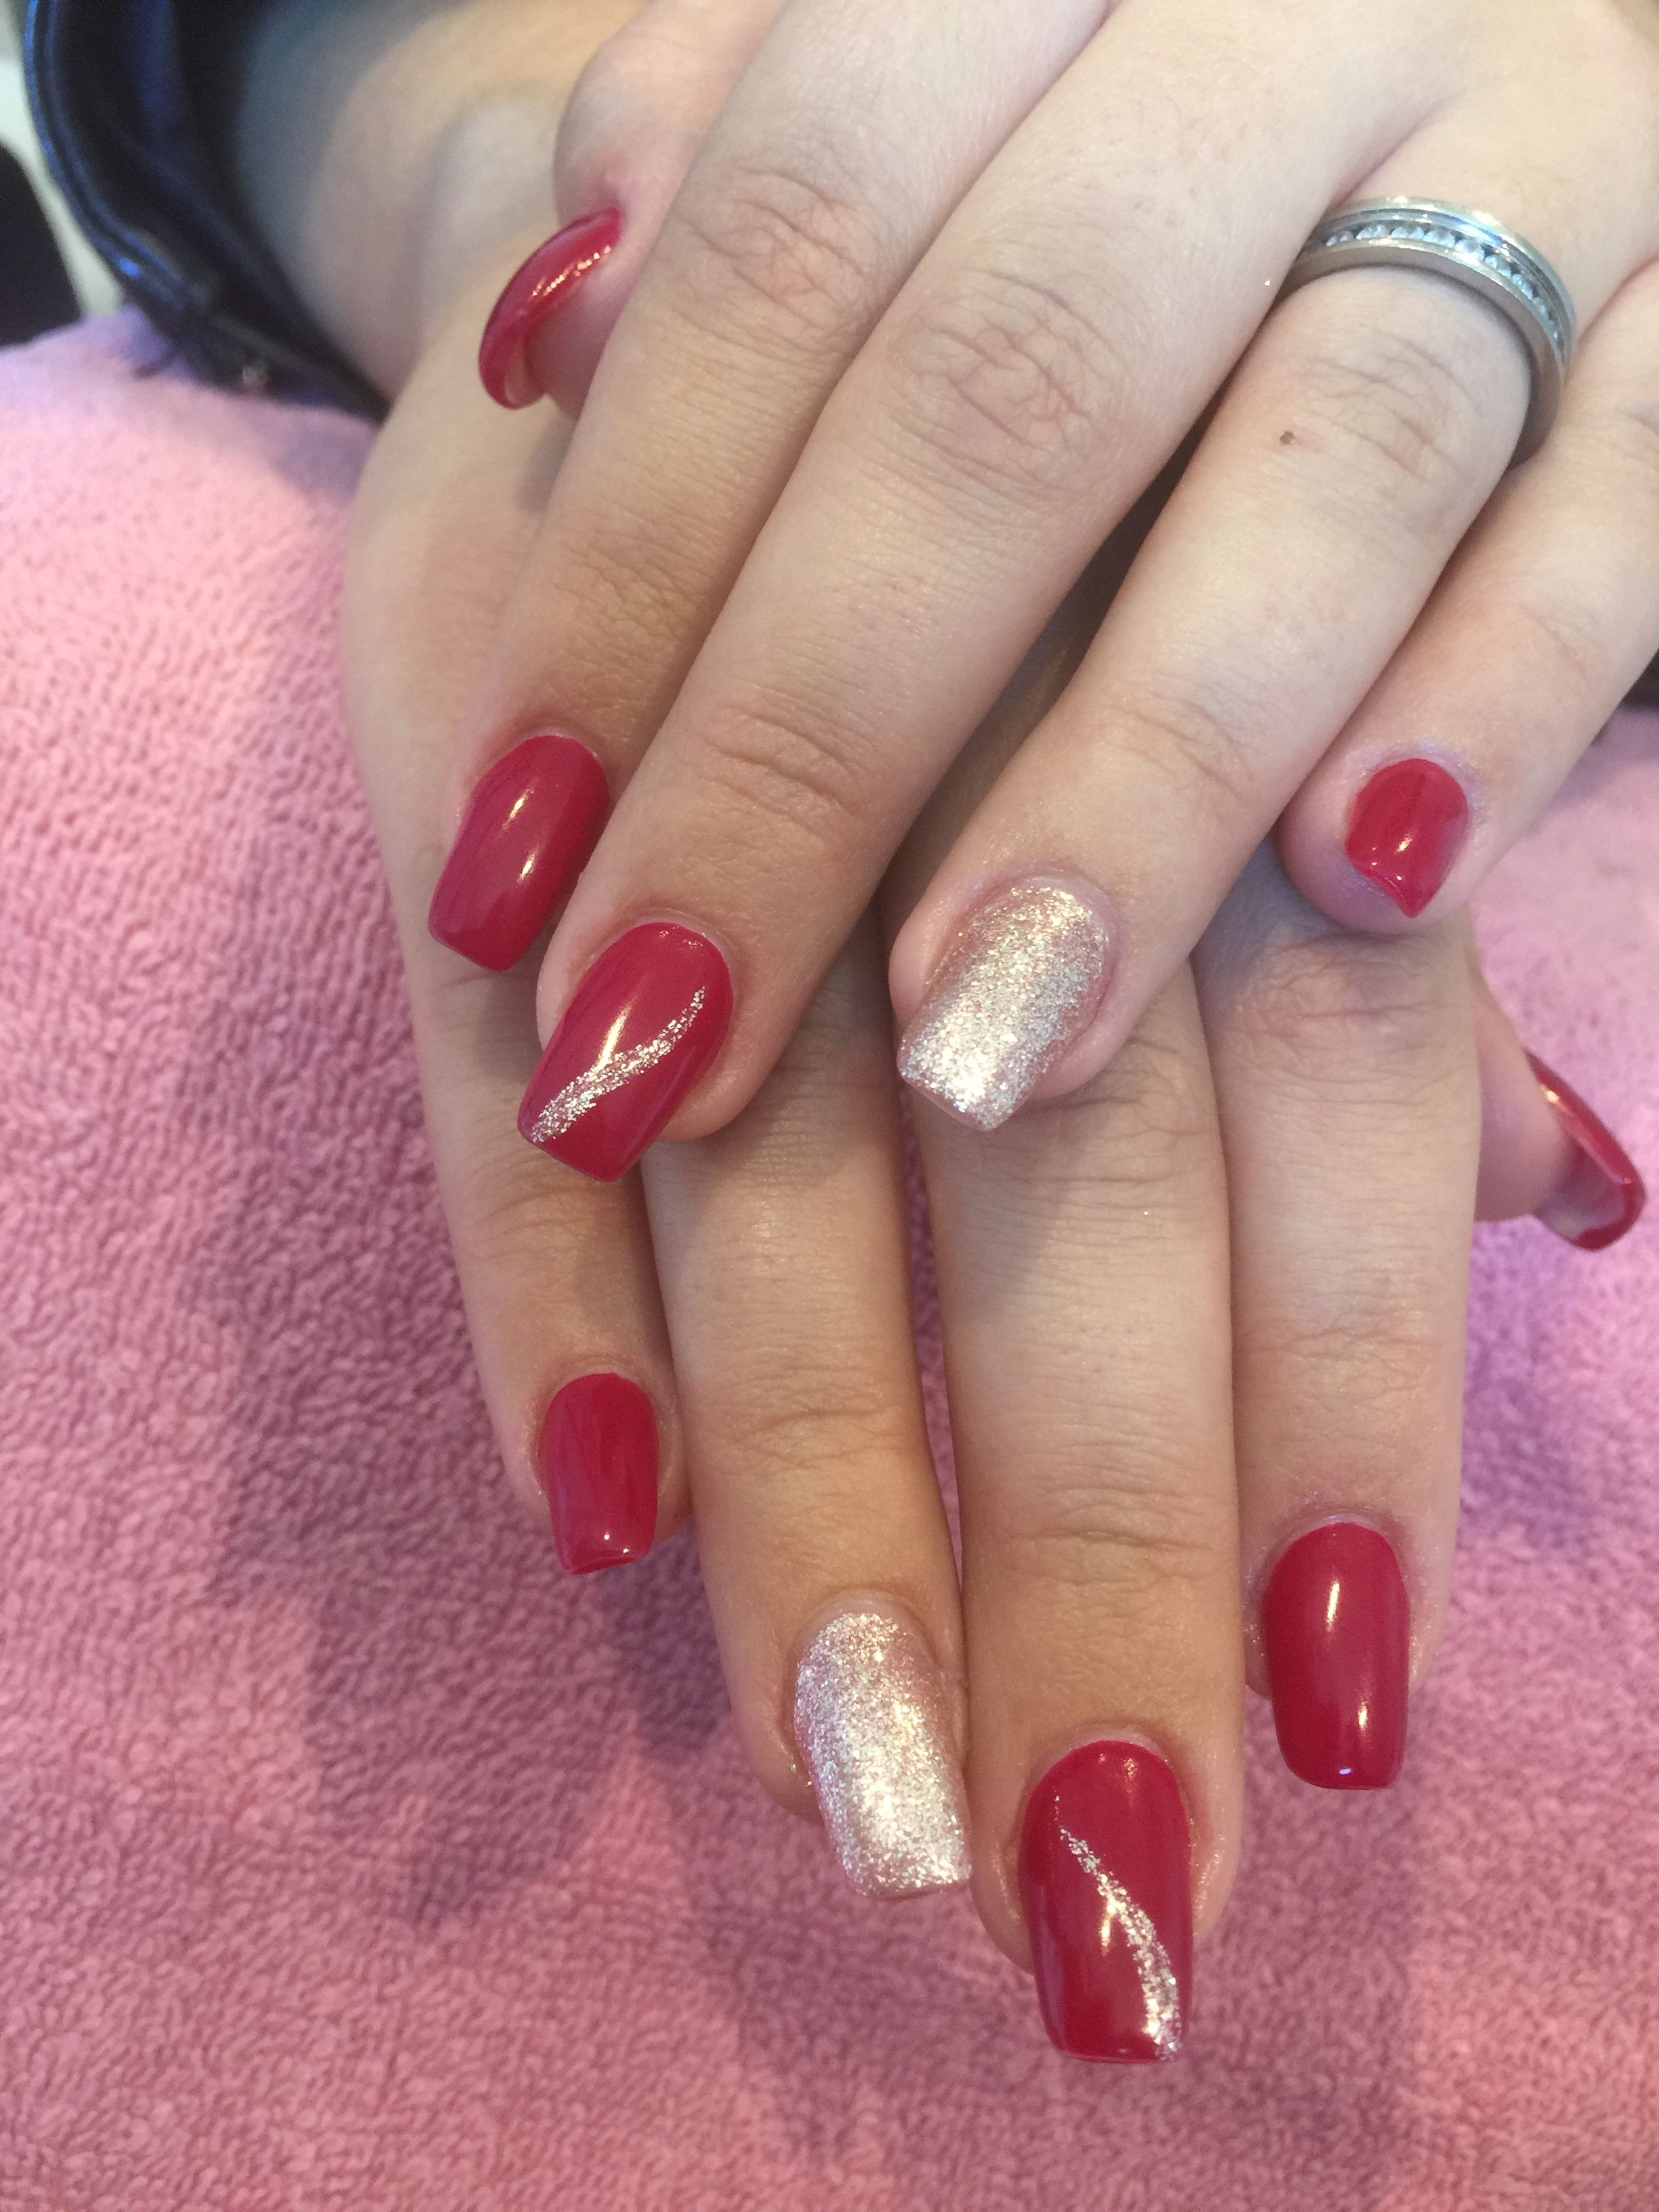 About baby boomer nail art tutorial by nded on pinterest nail art - Ongles Nail Art Semi Permanent